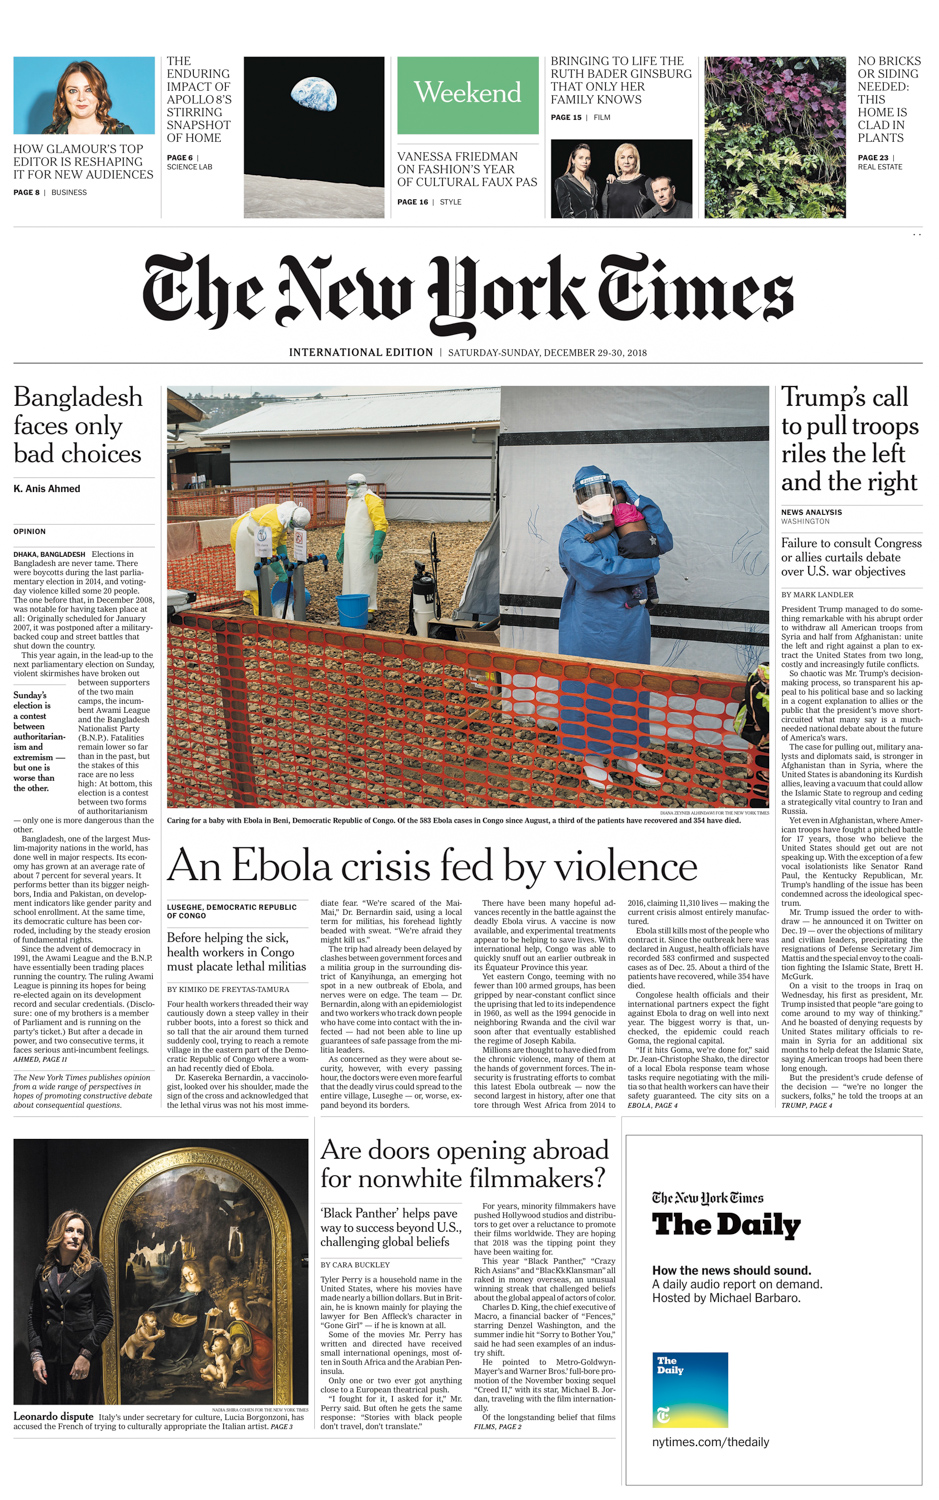 CLICK on title for online version     An ebola crisis fed by violence  | The New York Times (print), international edition, page A1 and A4, Dec 29-30, 2018